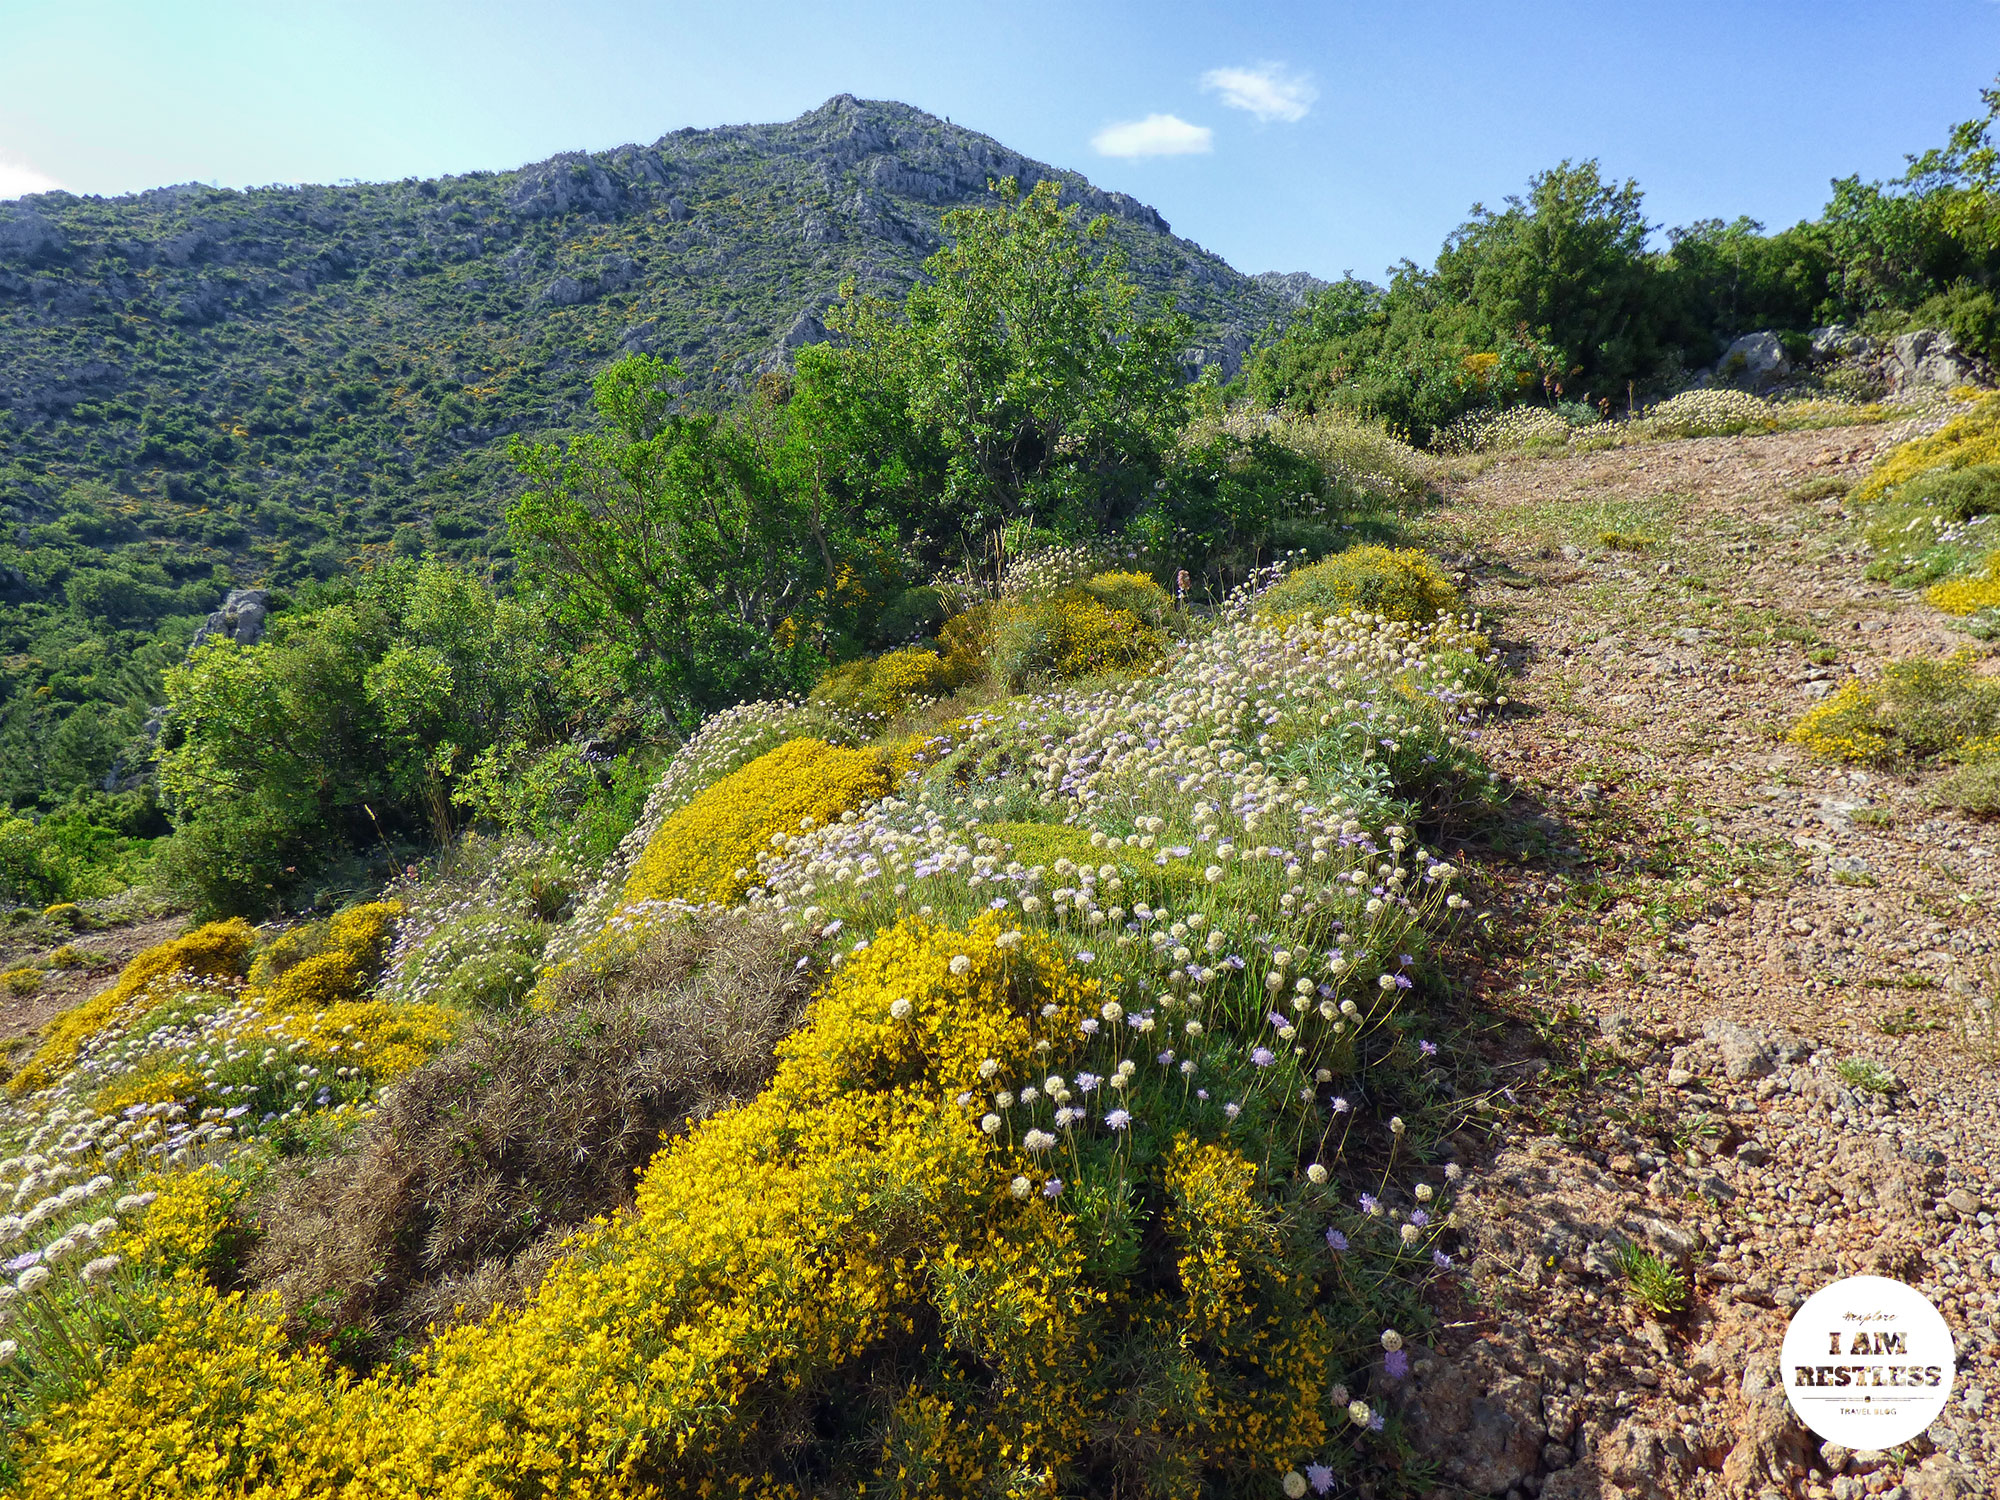 What-to-See-in-Greece-The-Scenic-Lookout-at-BellEkklisia-Agia-Paraskevi-Εκκλησία-Αγία-Παρασκευή---7.jpg